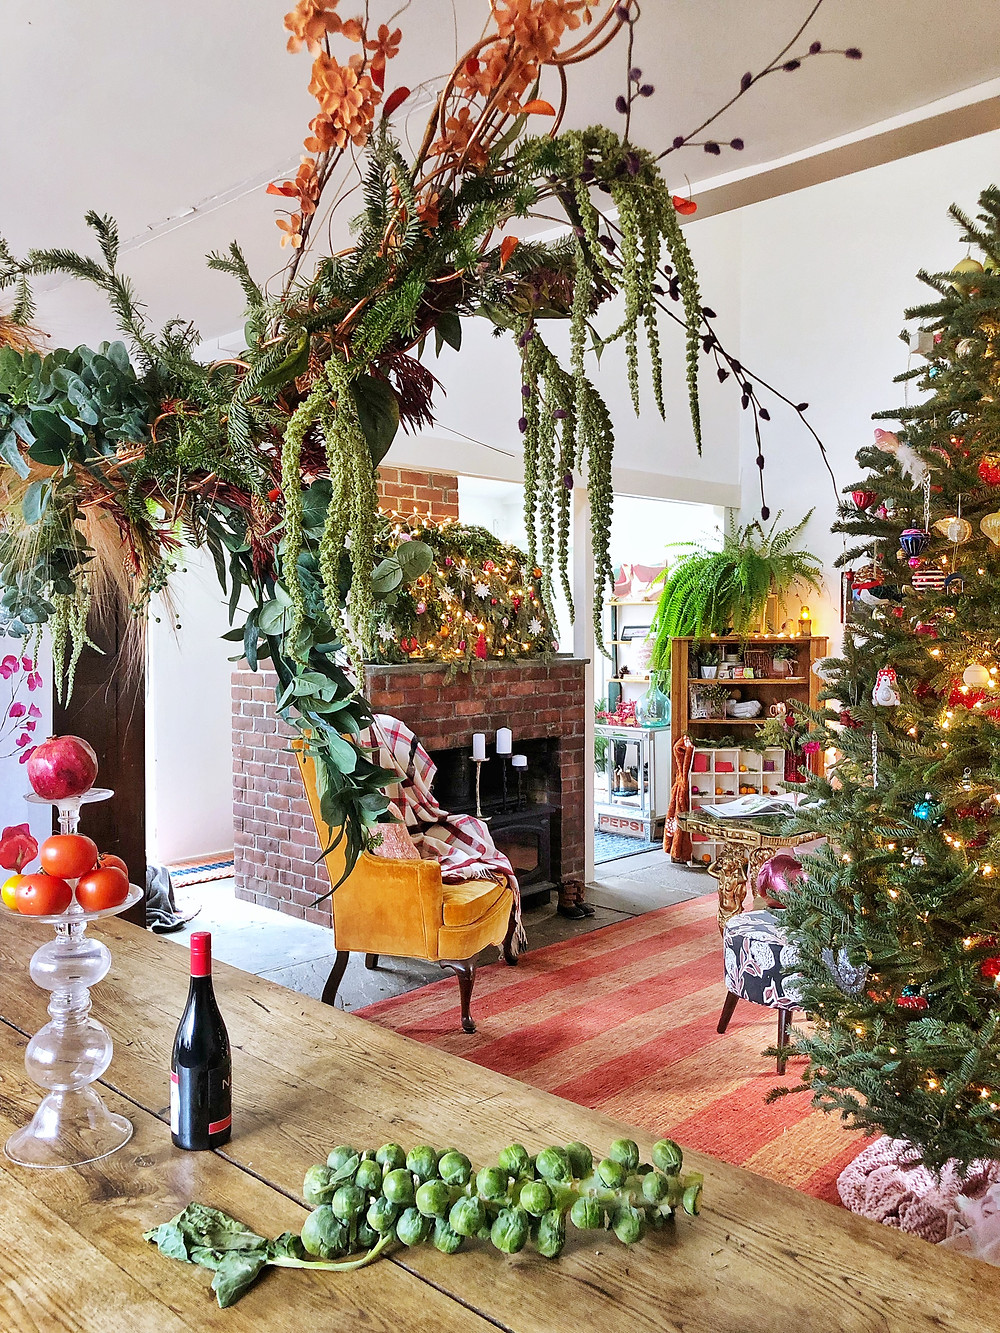 Interior Christmas jungle with weeping above head centerpiece.